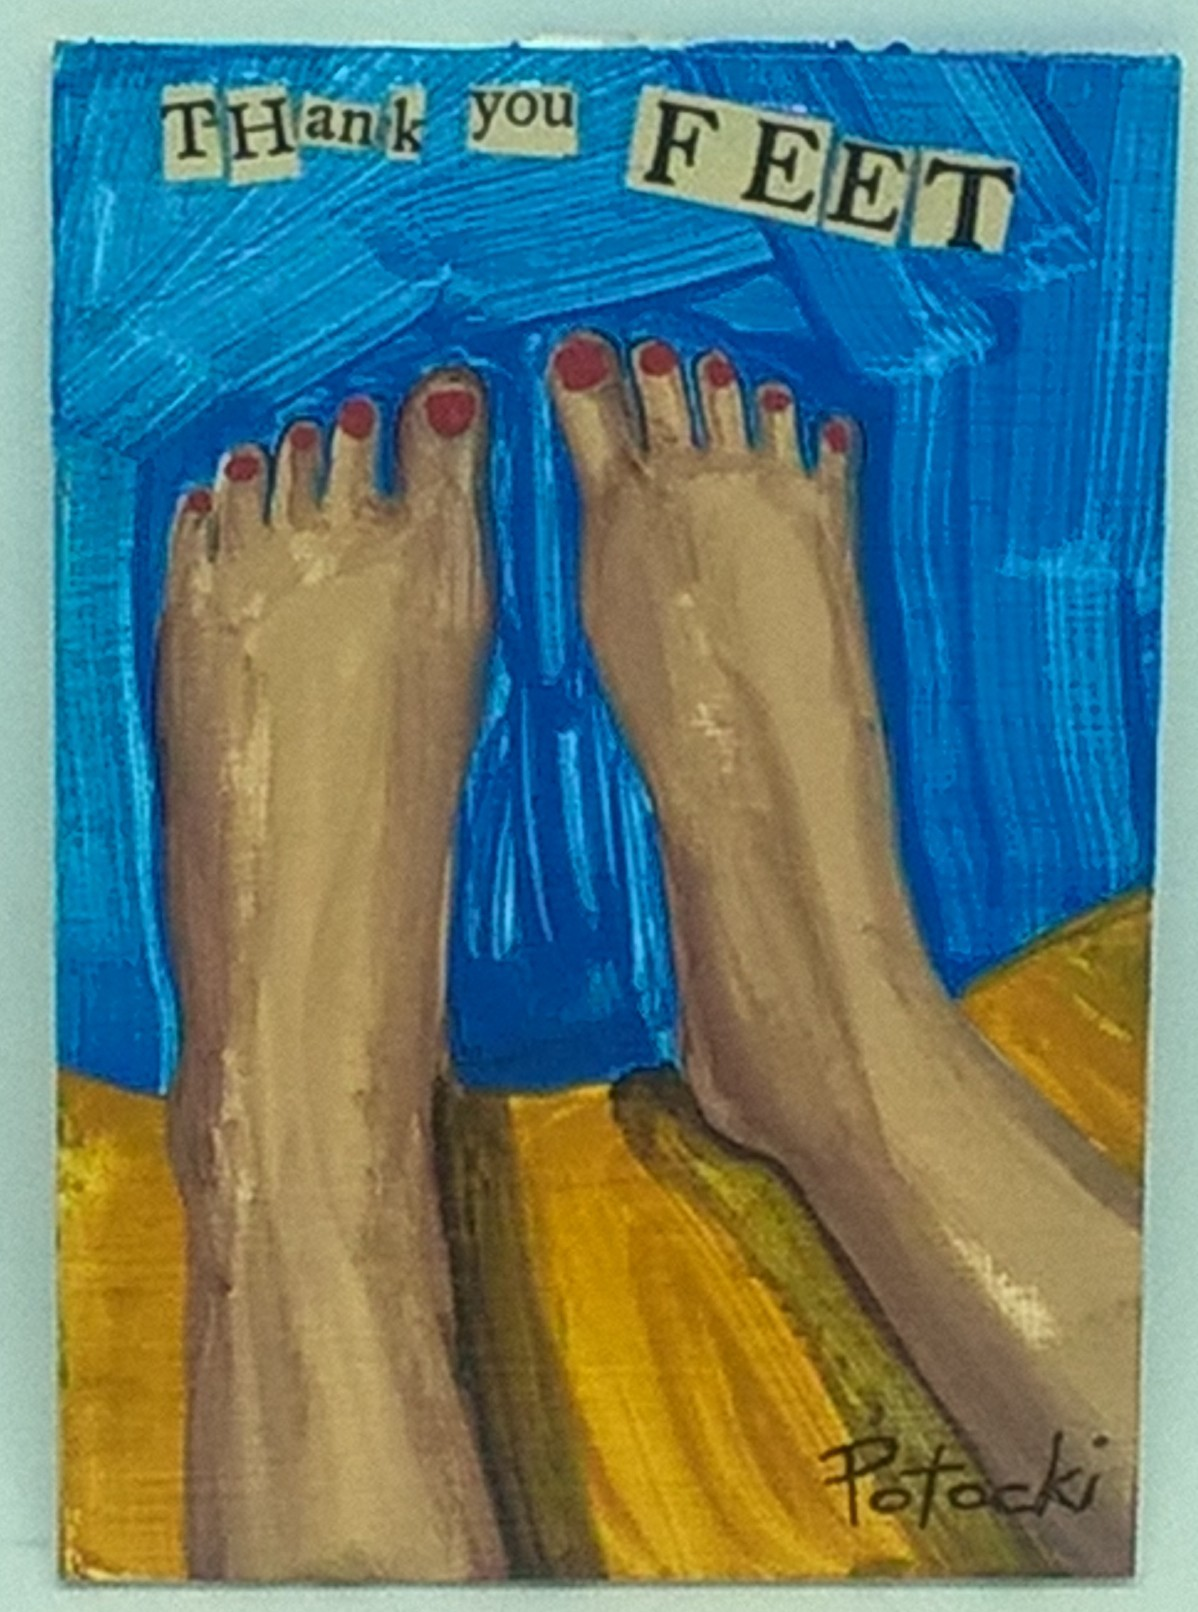 feet art, thank you feet